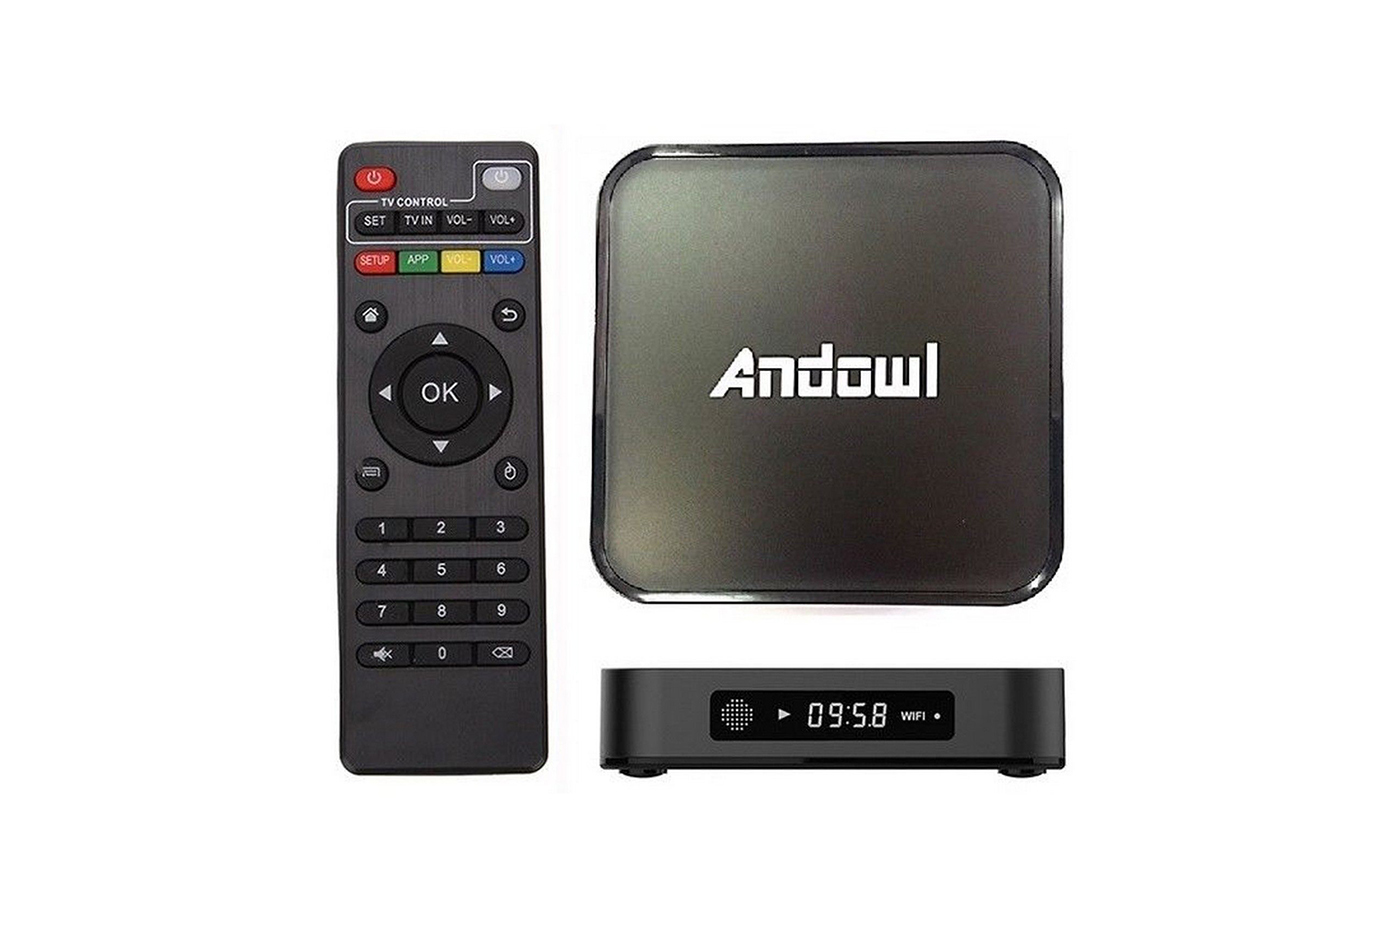 Android tv box 4K HD 7.1.2 smart tv wifi otg telecomando andowl